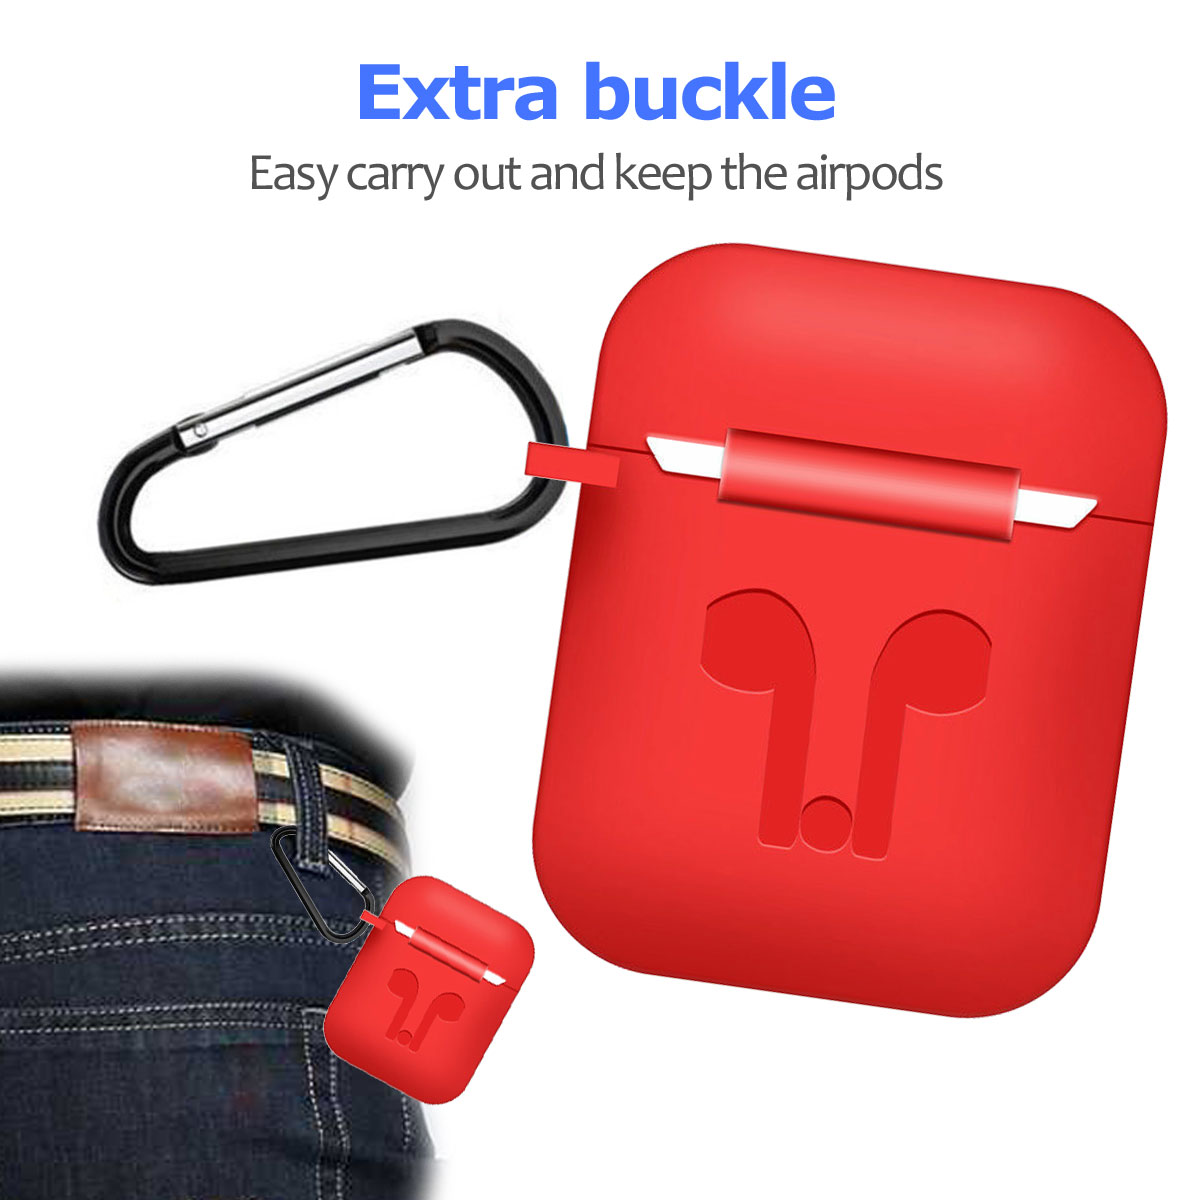 Silicone-Ruggged-Case-Cover-Earbuds-For-Apple-AirPods-2nd-Gen-Accessories-2019 thumbnail 29